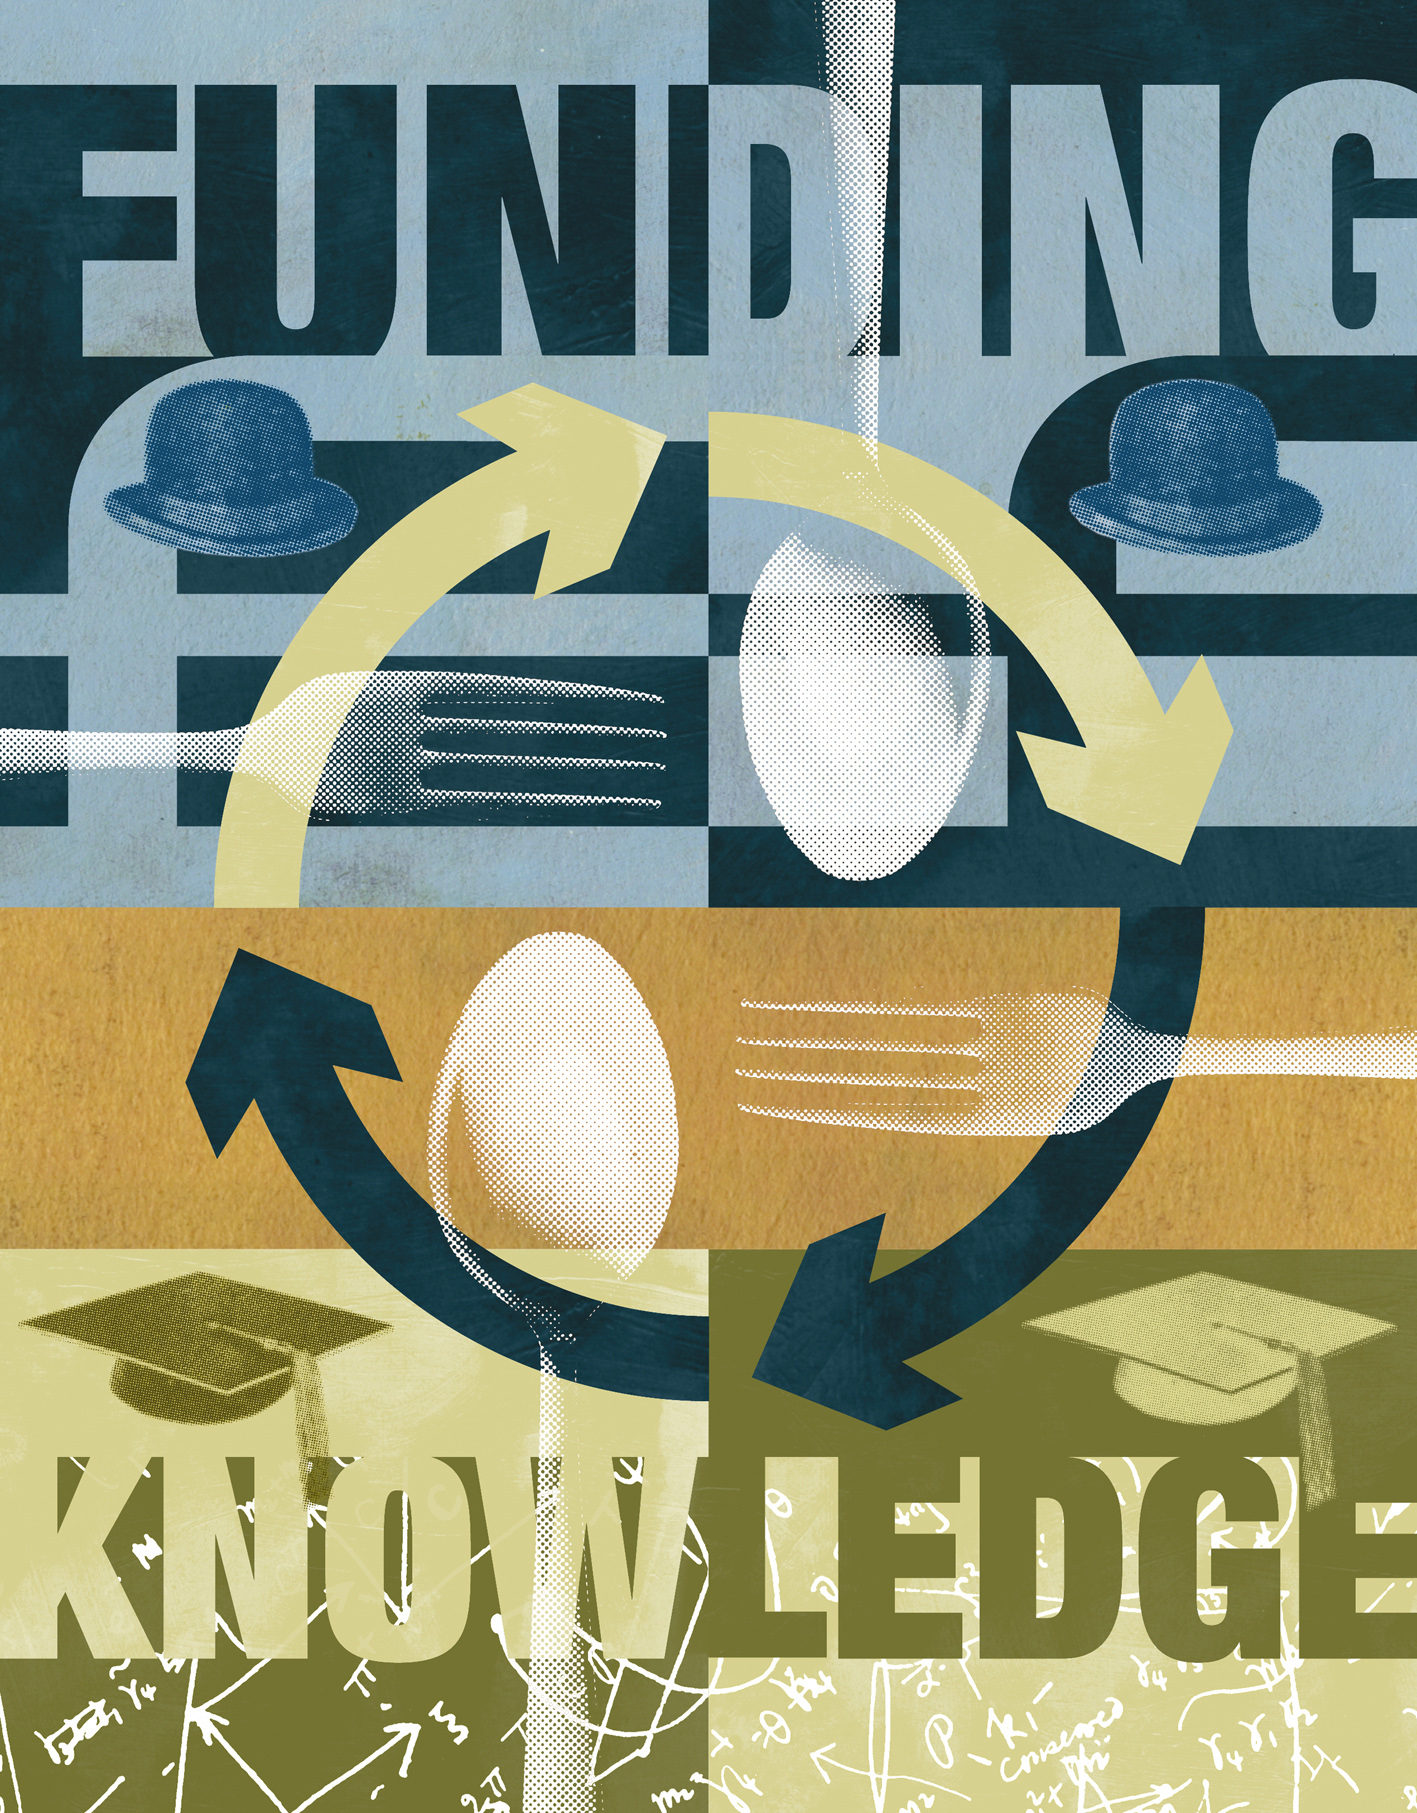 Funding Knowledge